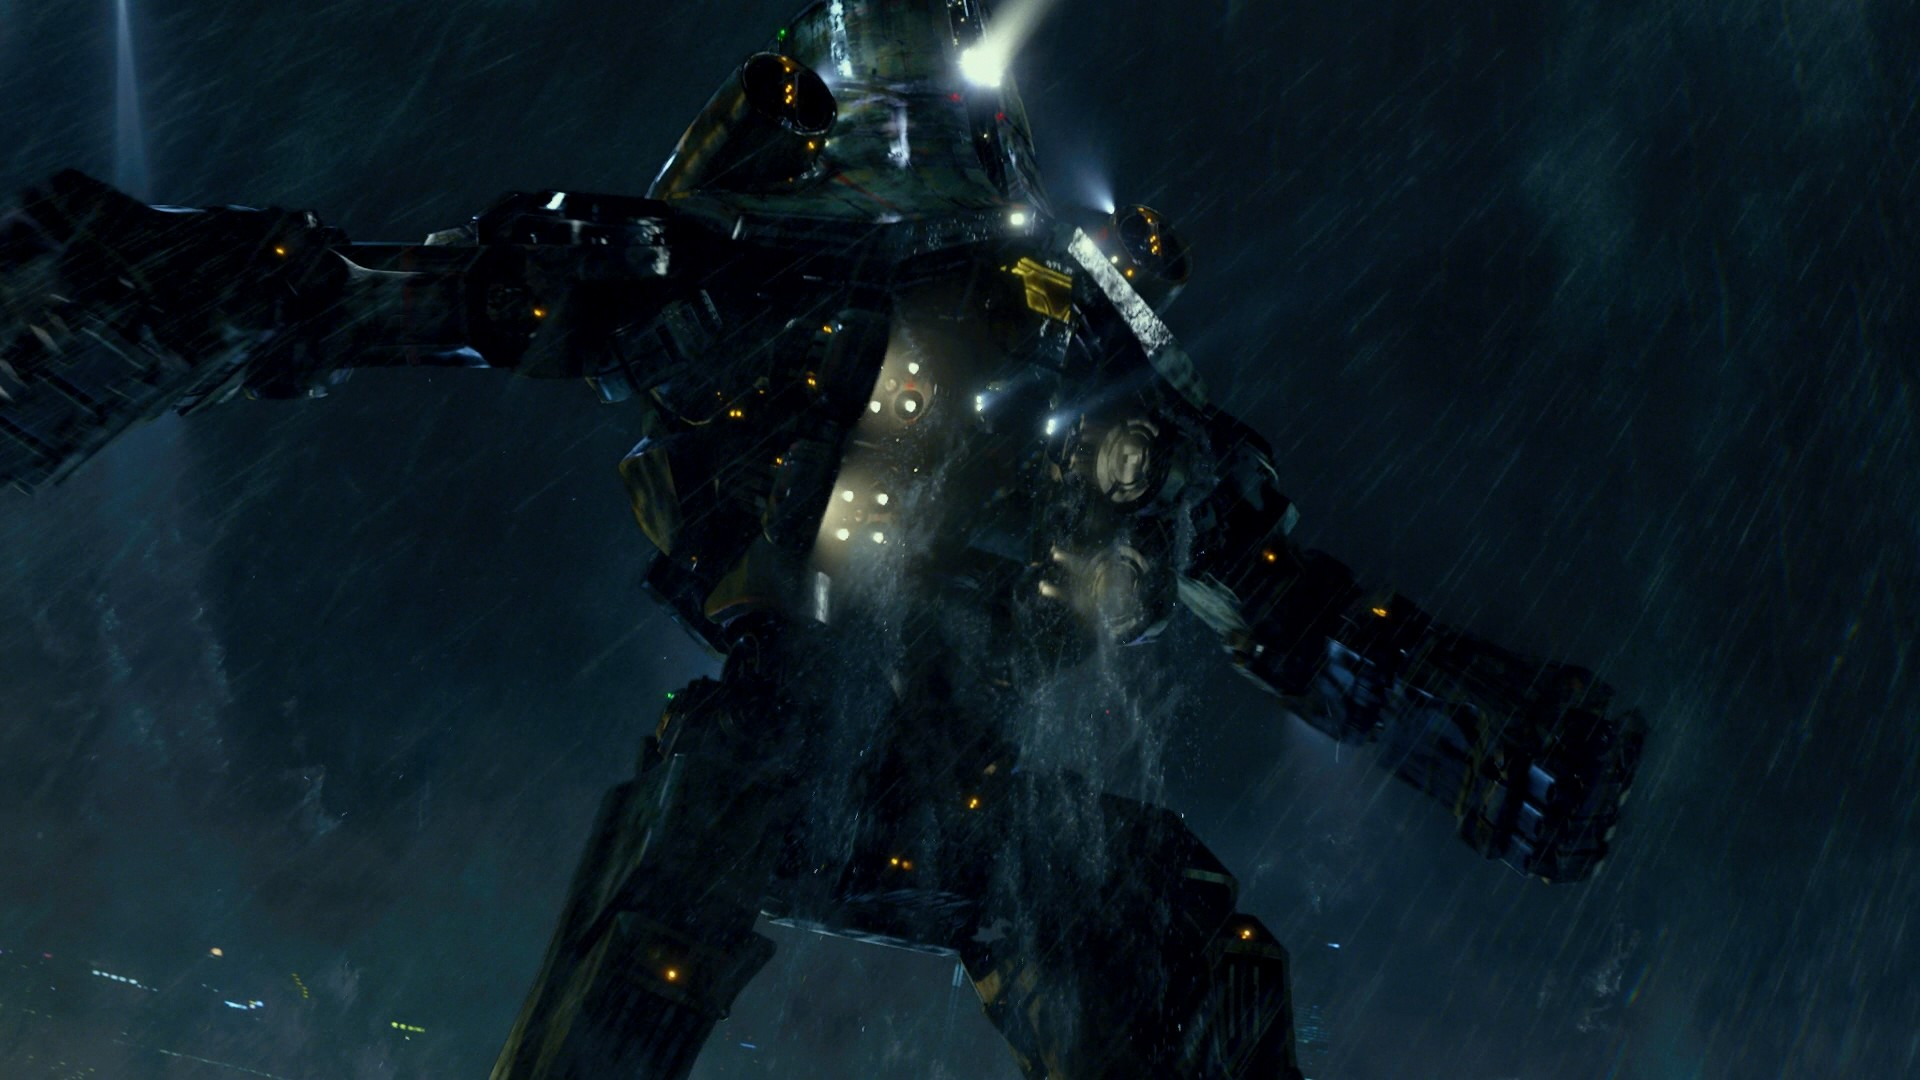 cherno alpha in pacific rim wallpapers - DriverLayer ... Pacific Rim Cherno Alpha Destroyed